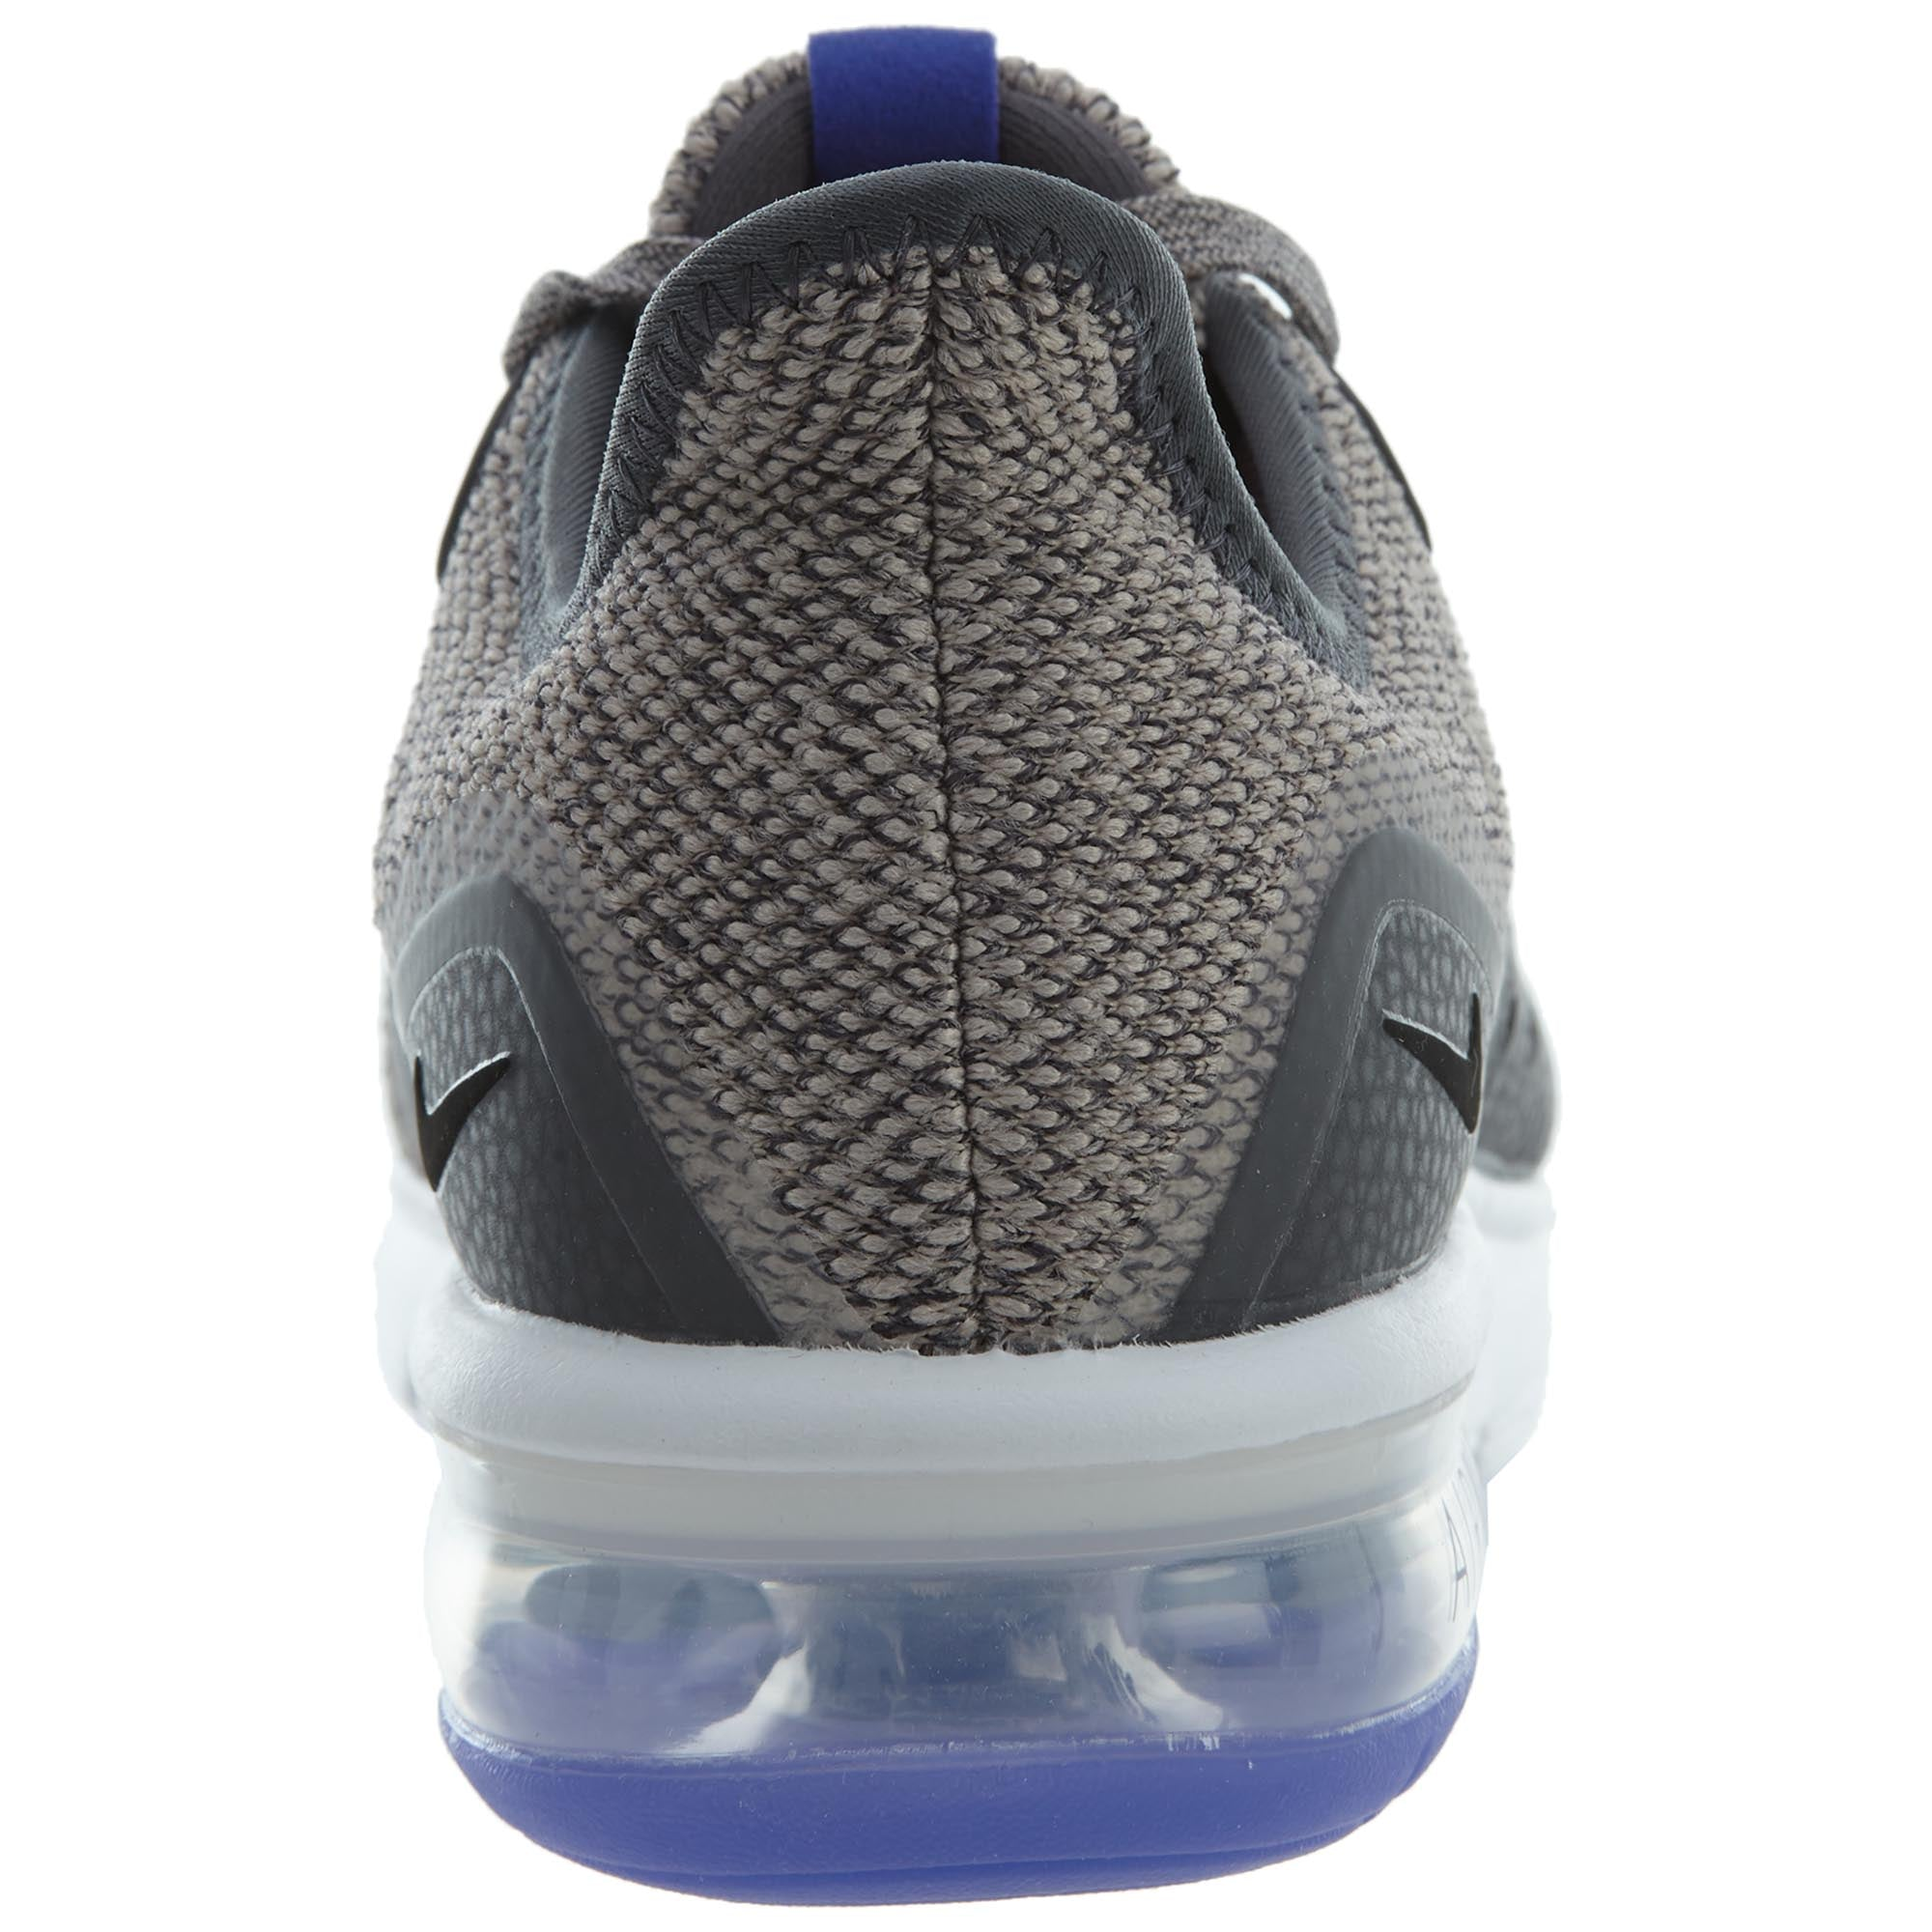 cbe7040df5 Nike Air Max Sequent 3 Womens Style : 908993